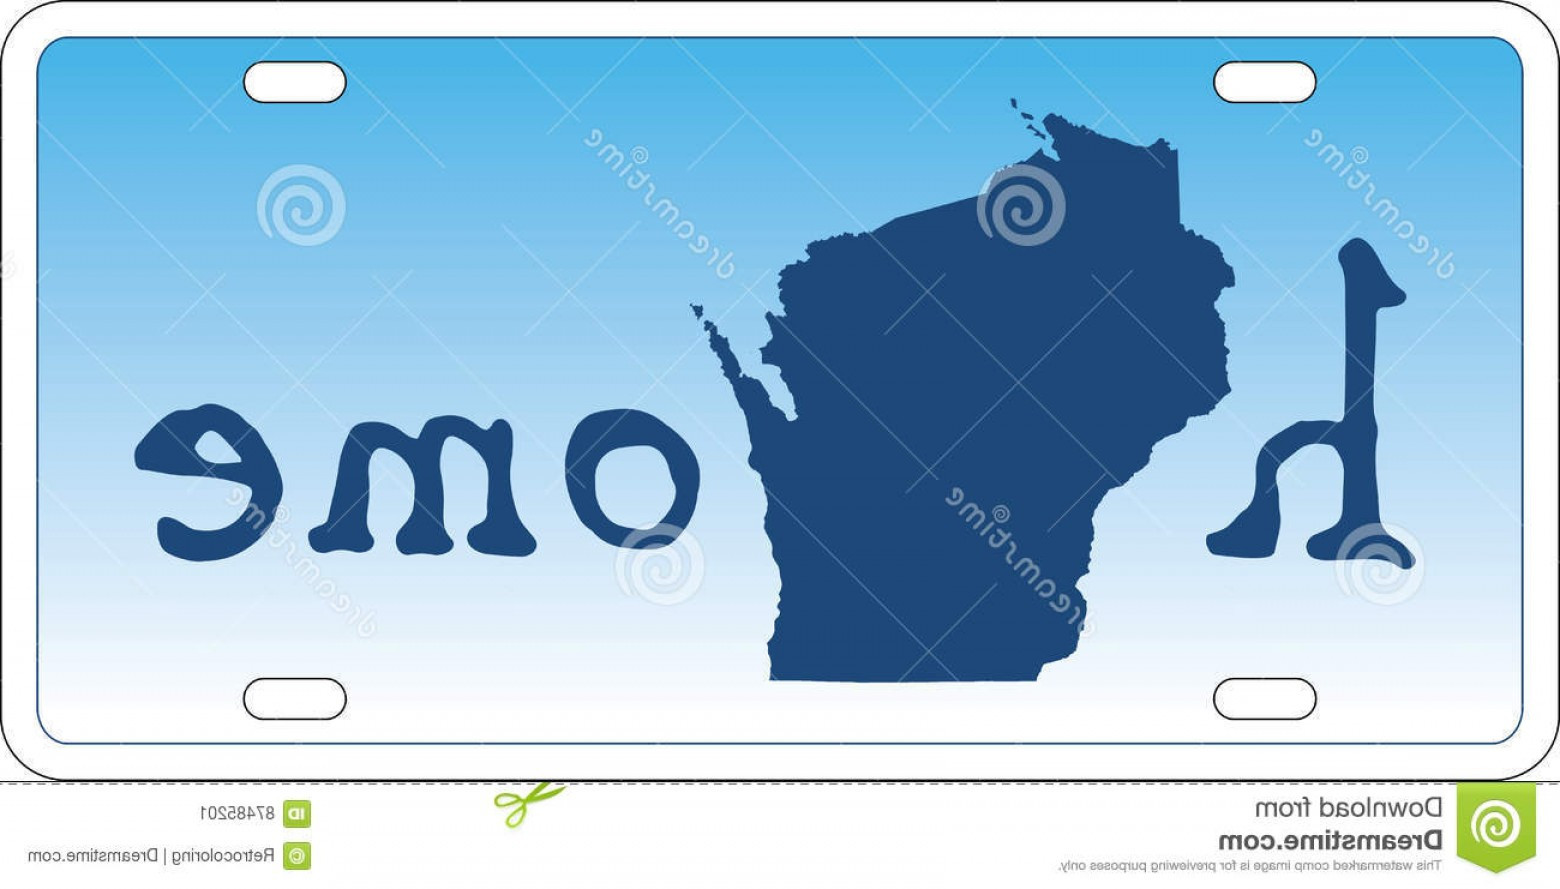 1560x889 Stock Illustration Wisconsin State License Plate Vector U S